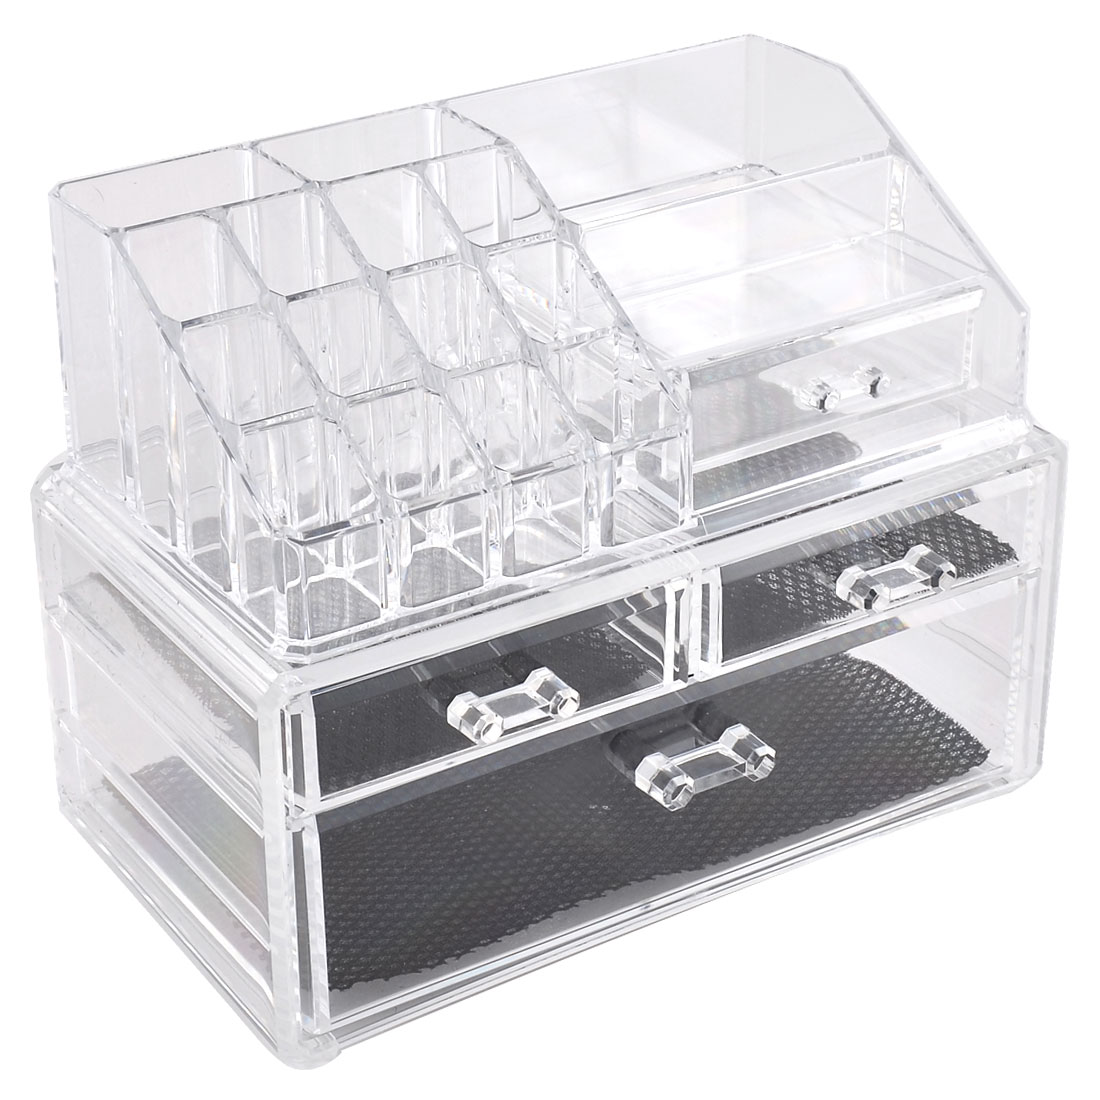 Acrylic 4-drawer Cosmetics Makeup Storage Case Jewelry Organizer Display Box Set 2 in 1